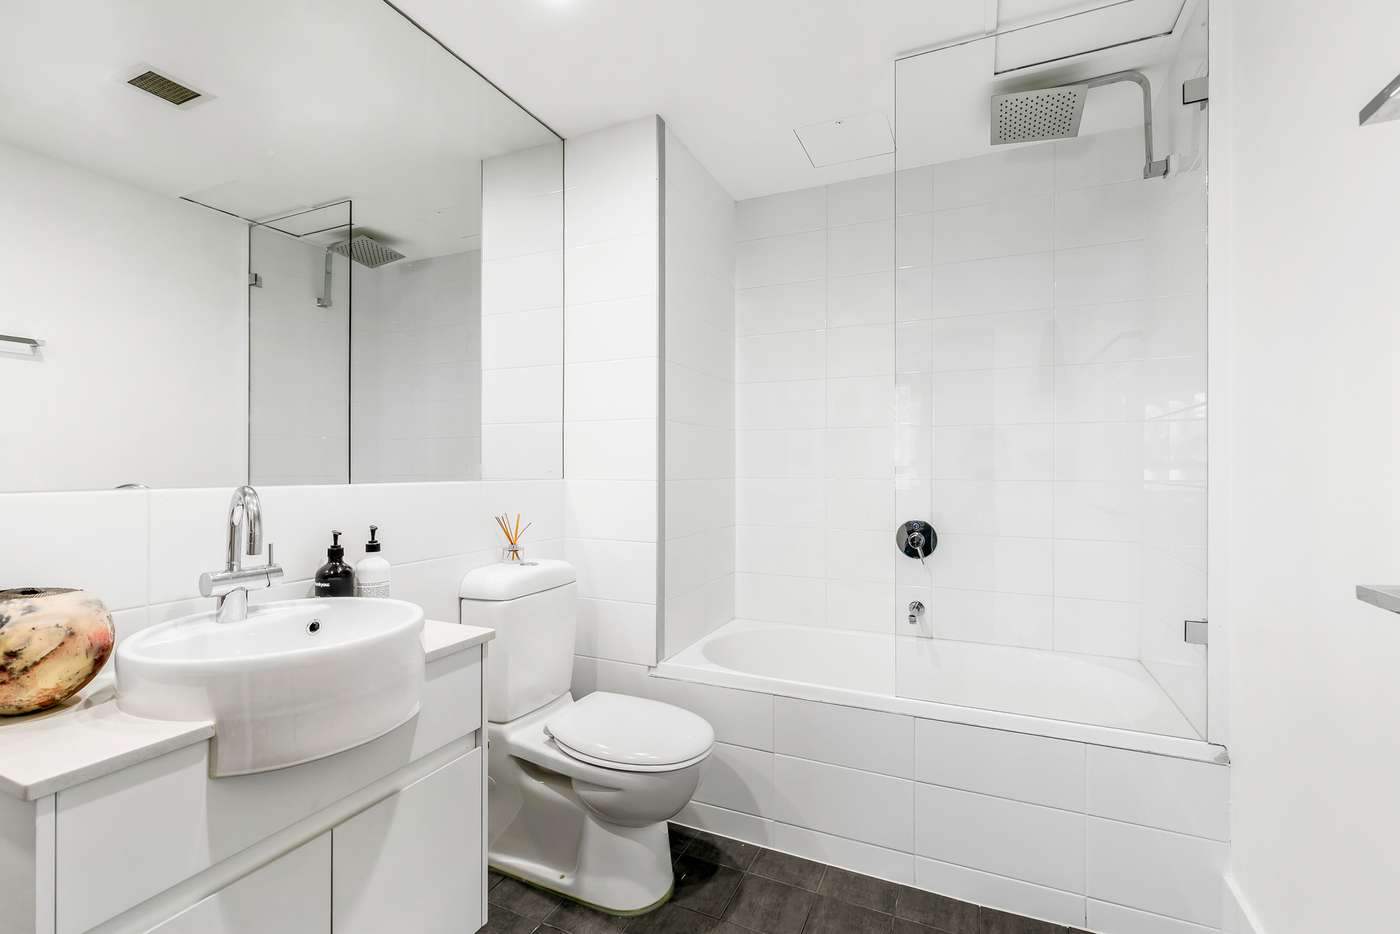 Fifth view of Homely apartment listing, C401/5 Hunter Street, Waterloo NSW 2017